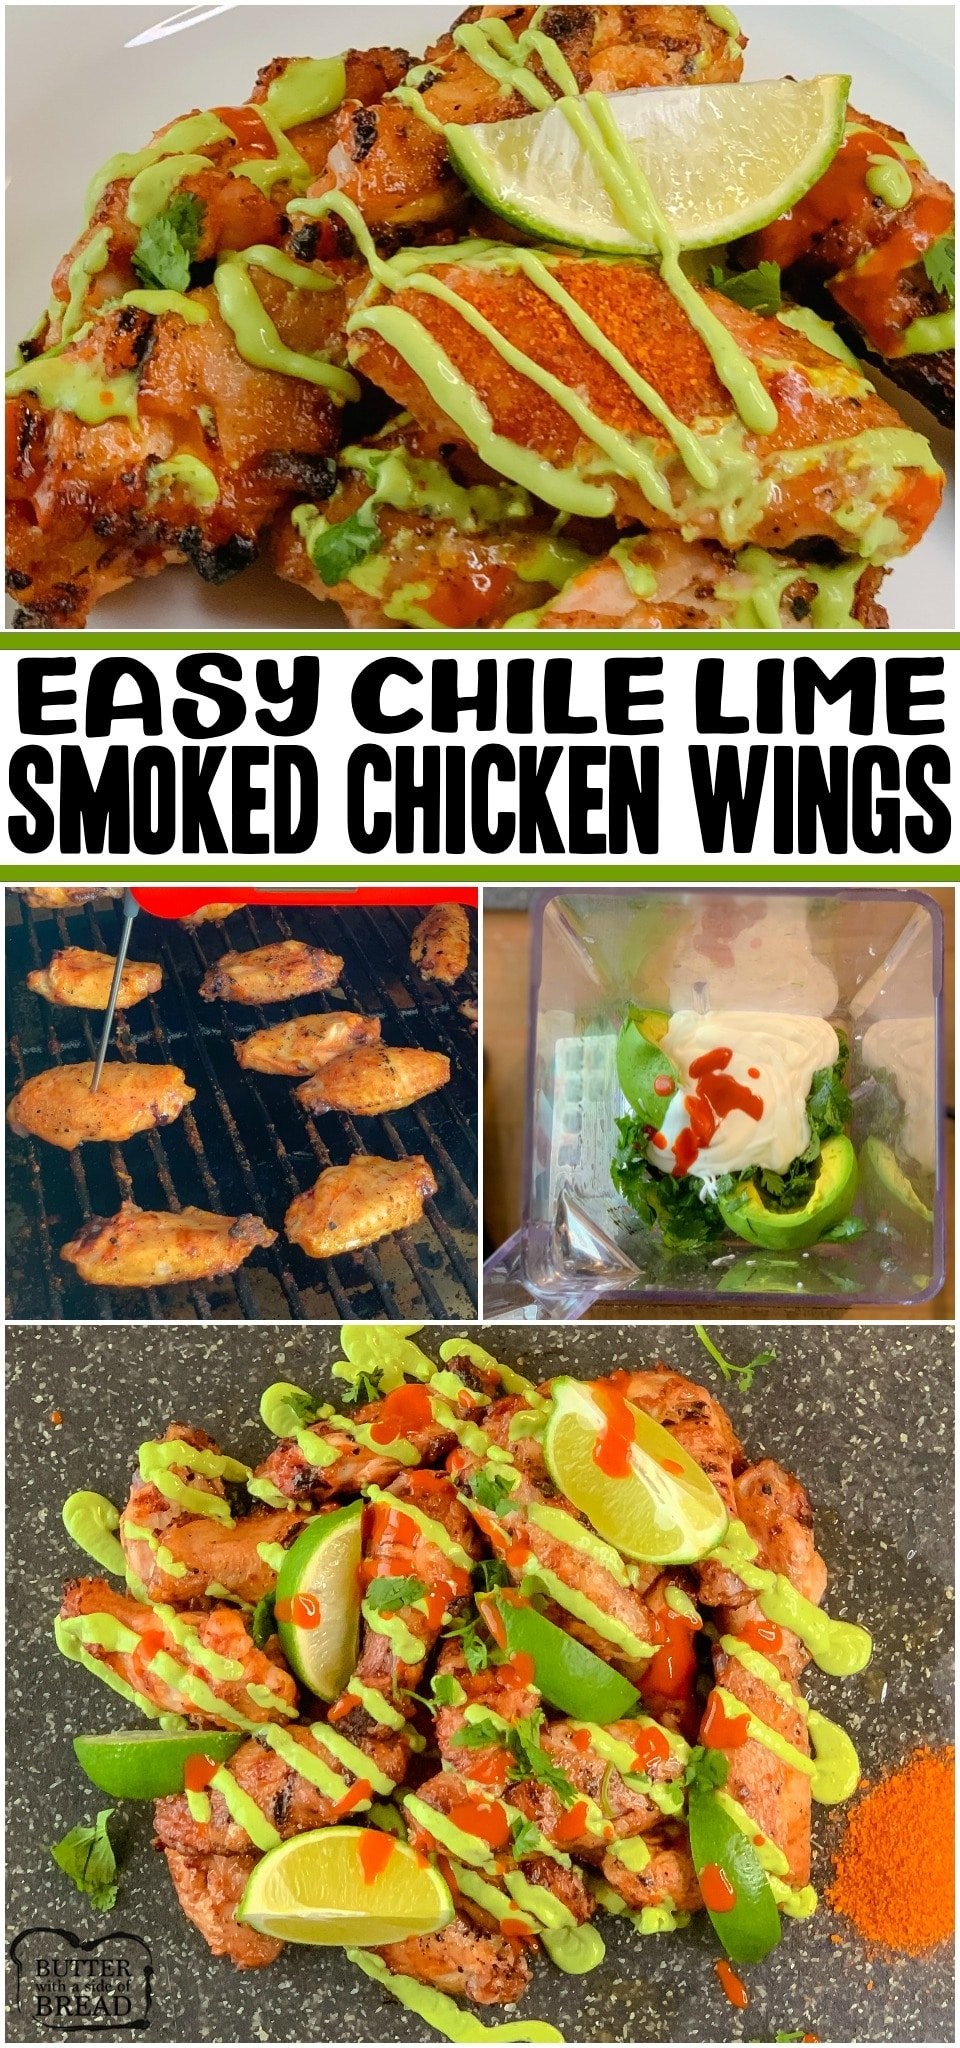 Chile Lime Smoked Chicken Wings made easy with a bit of prep and under an hour on the smoker! Bold, fresh flavors of chile lime paired with tender smoked chicken wings and topped with an amazing avocado crema make this my go-to wings recipe!#chicken #wings #smoked #lime #chile #crema #appetizer #recipe from BUTTER WITH A SIDE OF BREAD